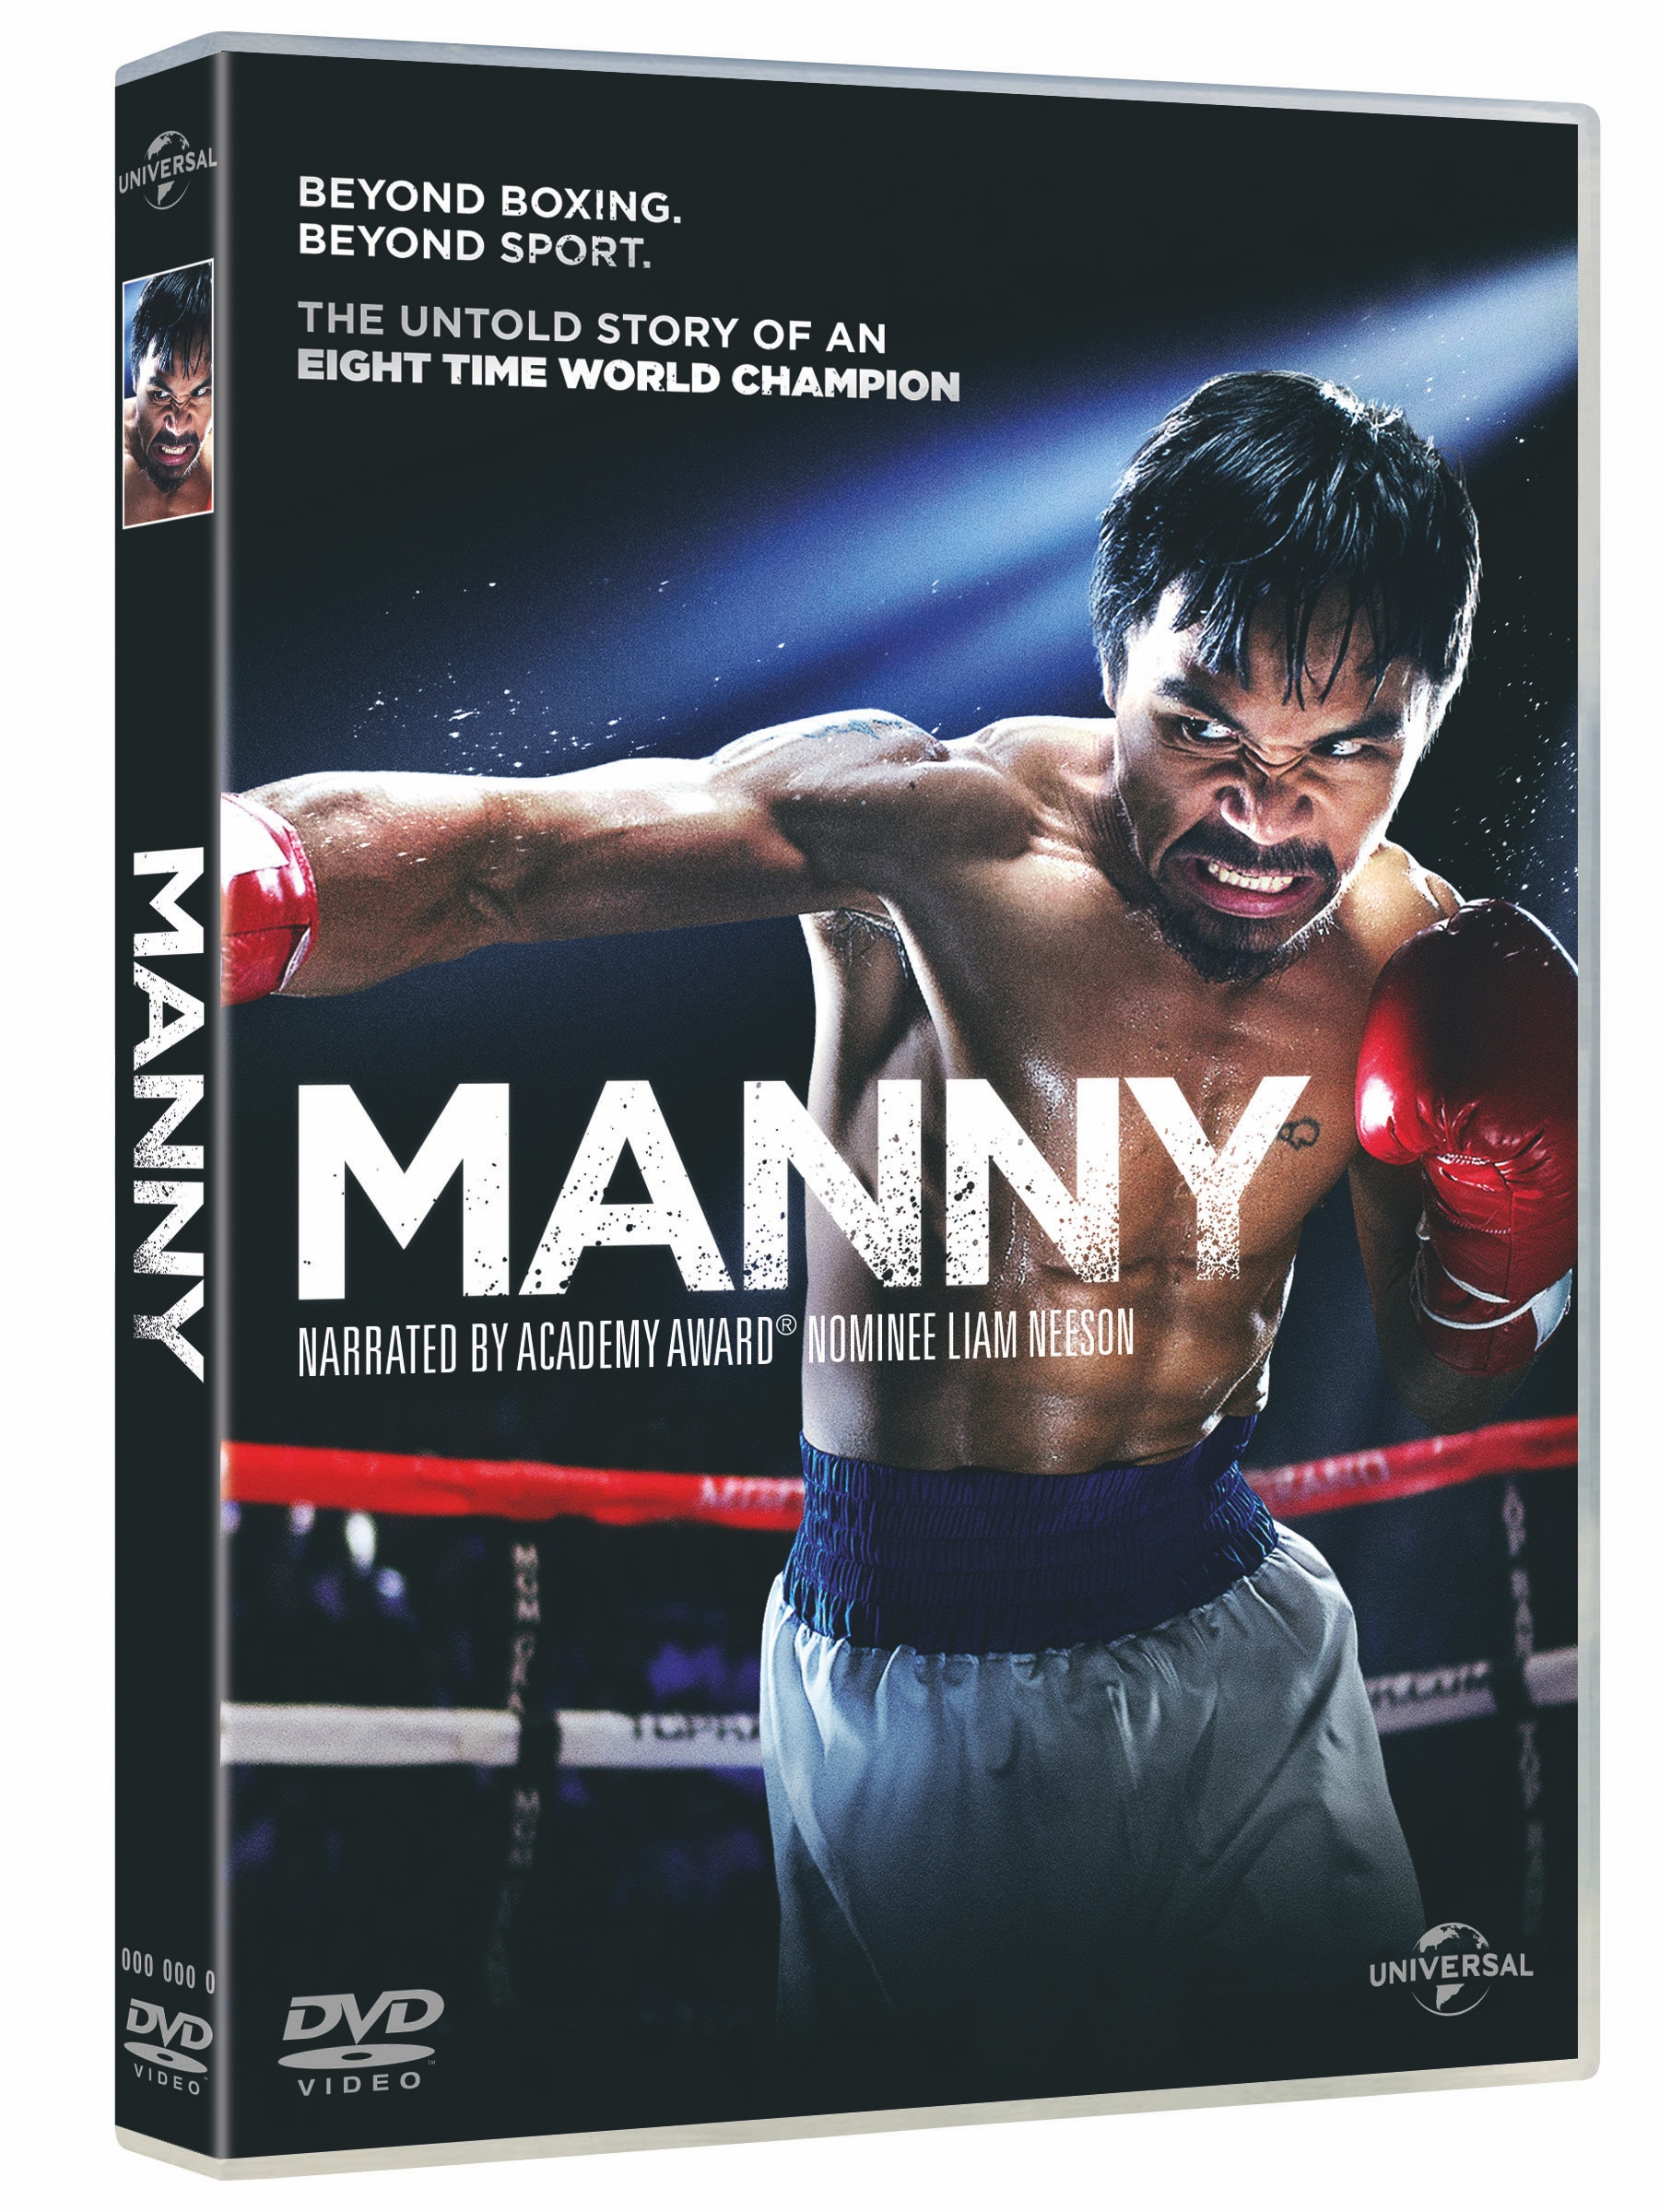 a copy of Manny on DVD and a Manny poster sweepstakes